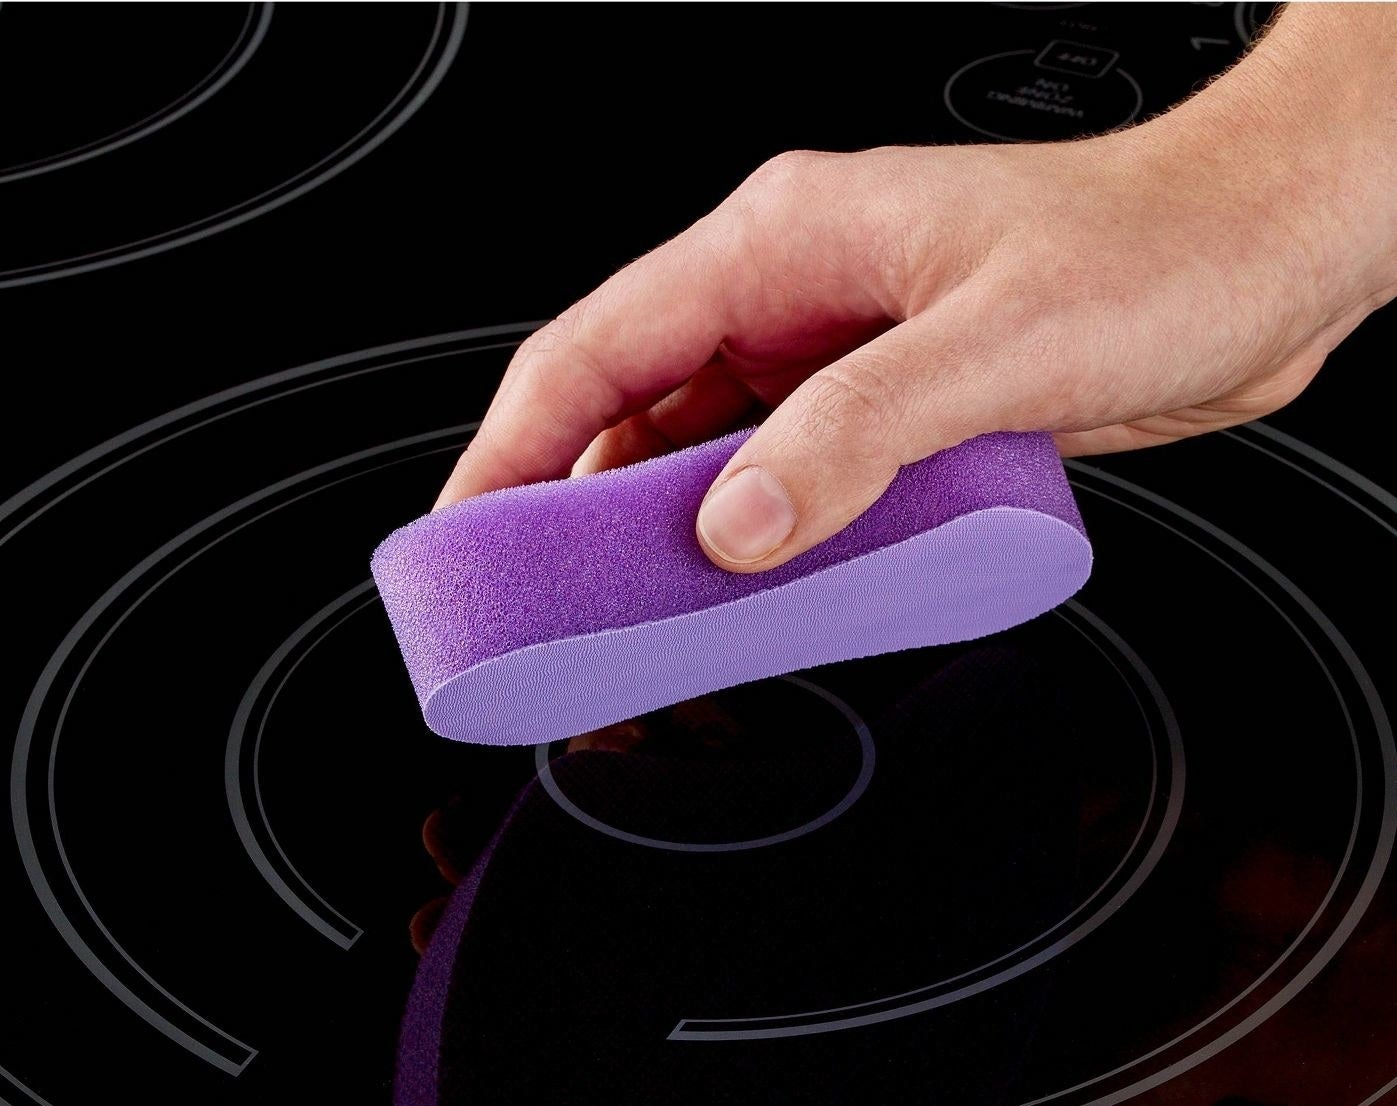 person using purple cleaning pad for a glass stovetop